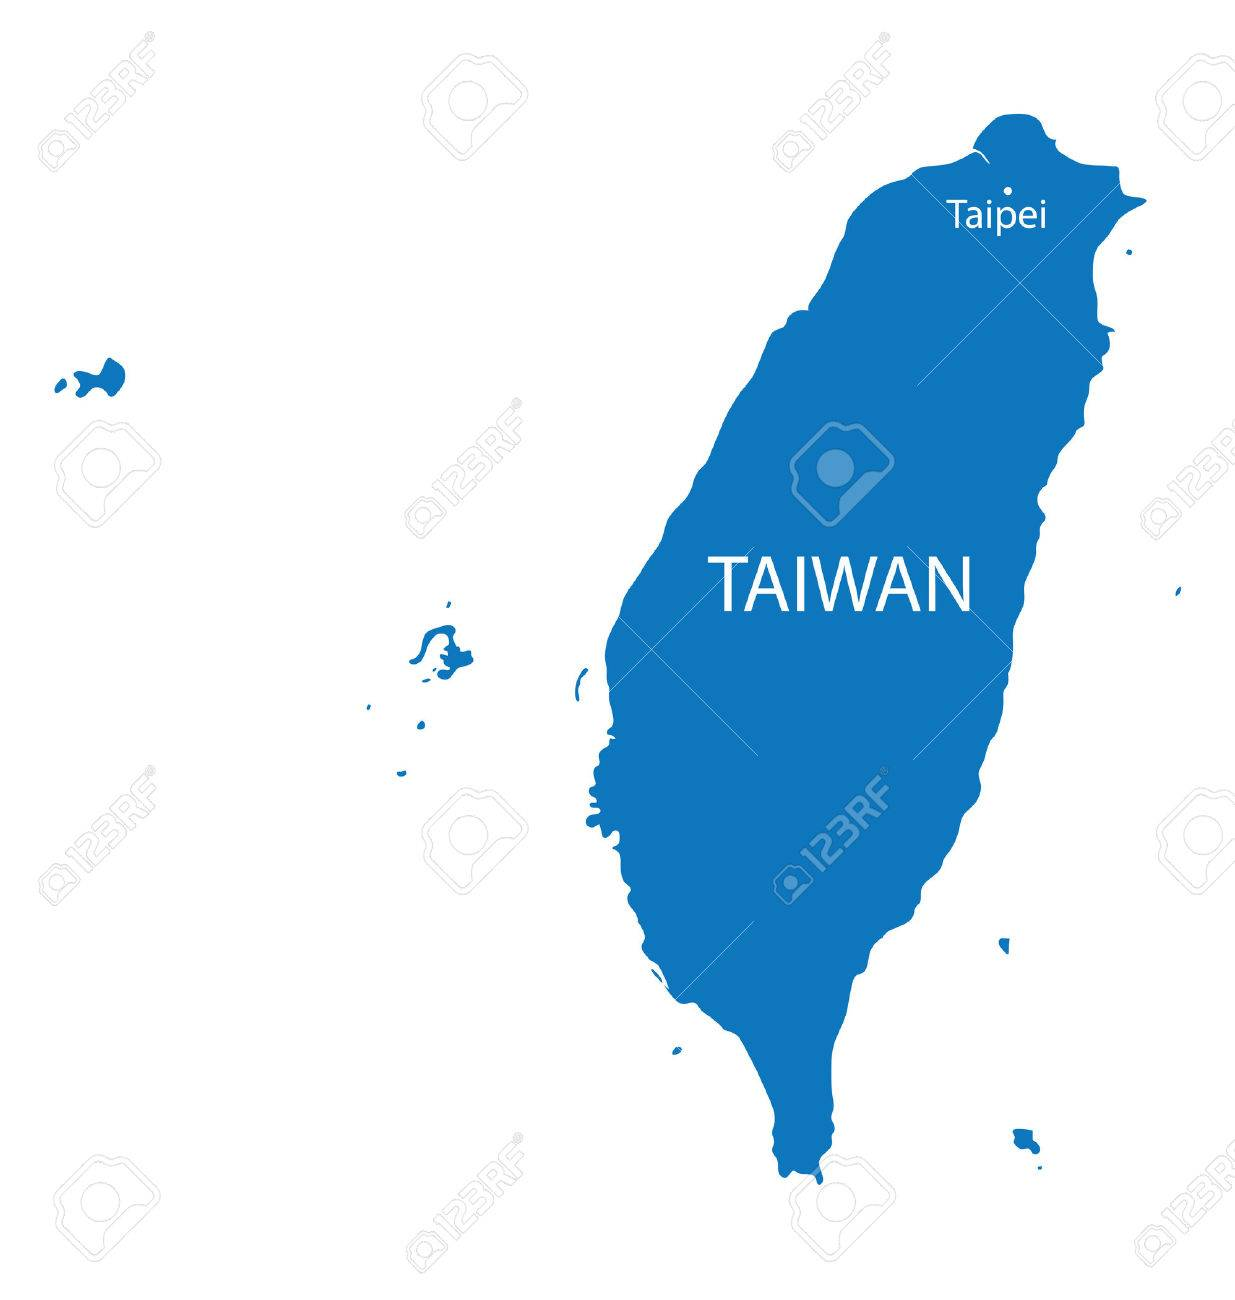 blue map of Taiwan with indication of Taipei - 42506716